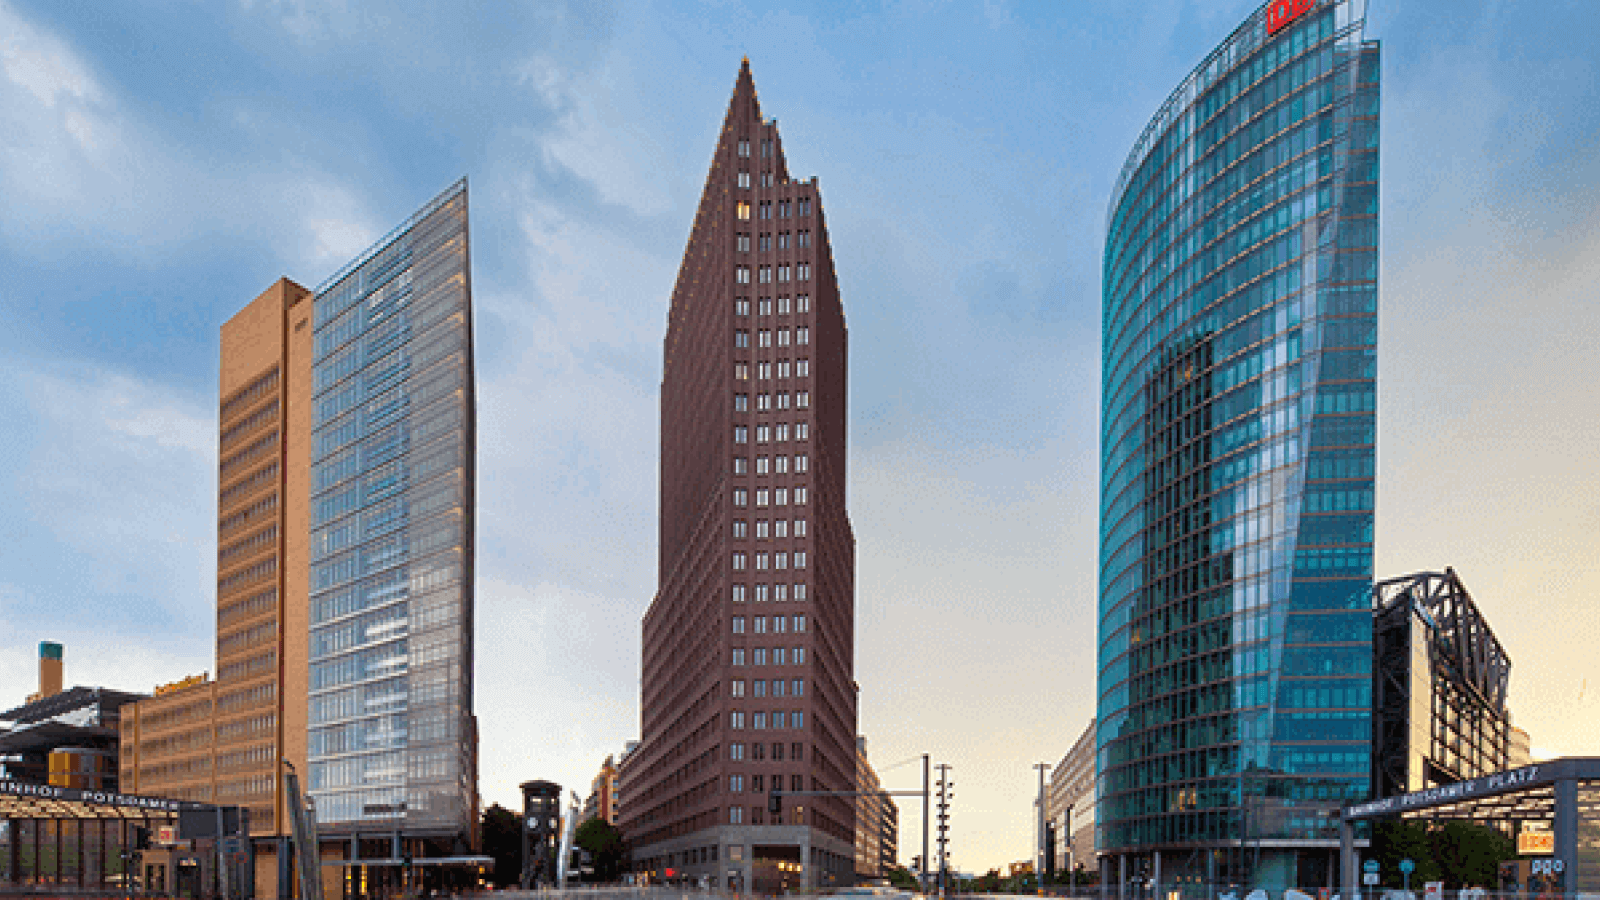 Three dramatic razor-edge office buildings in Berlin's Potsdamer Platz